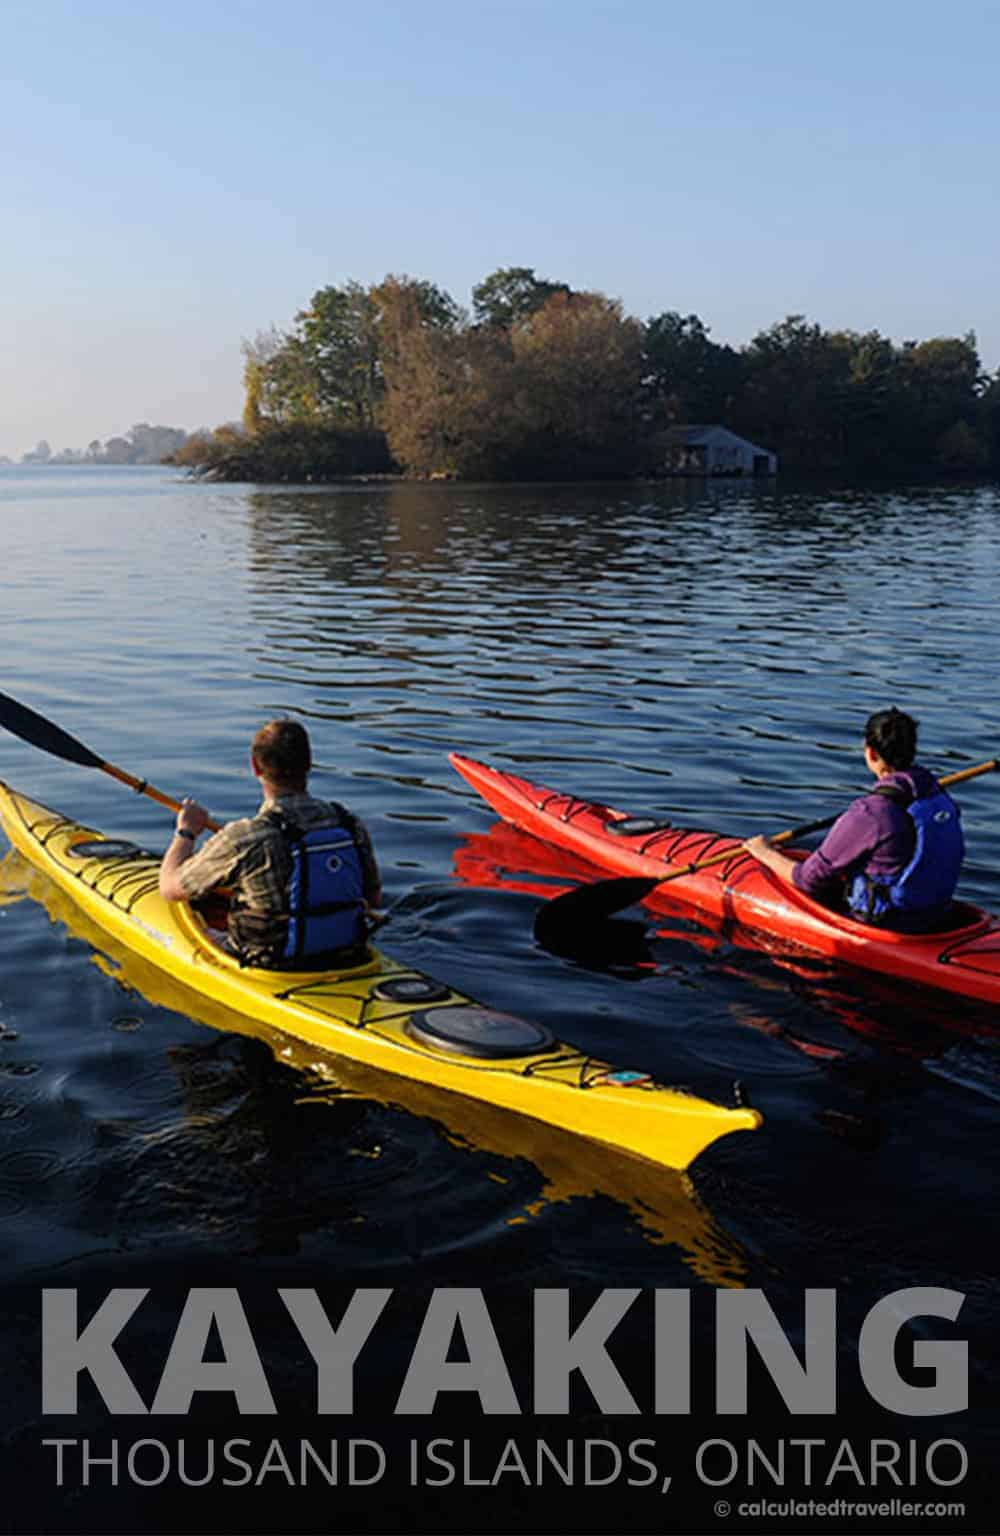 1000 Islands Kayaking in Thousand Islands, Ontario: Paddling back through history by Calculated Traveller | #Ontario #travel #outdoor #kayak #ThousandIslands